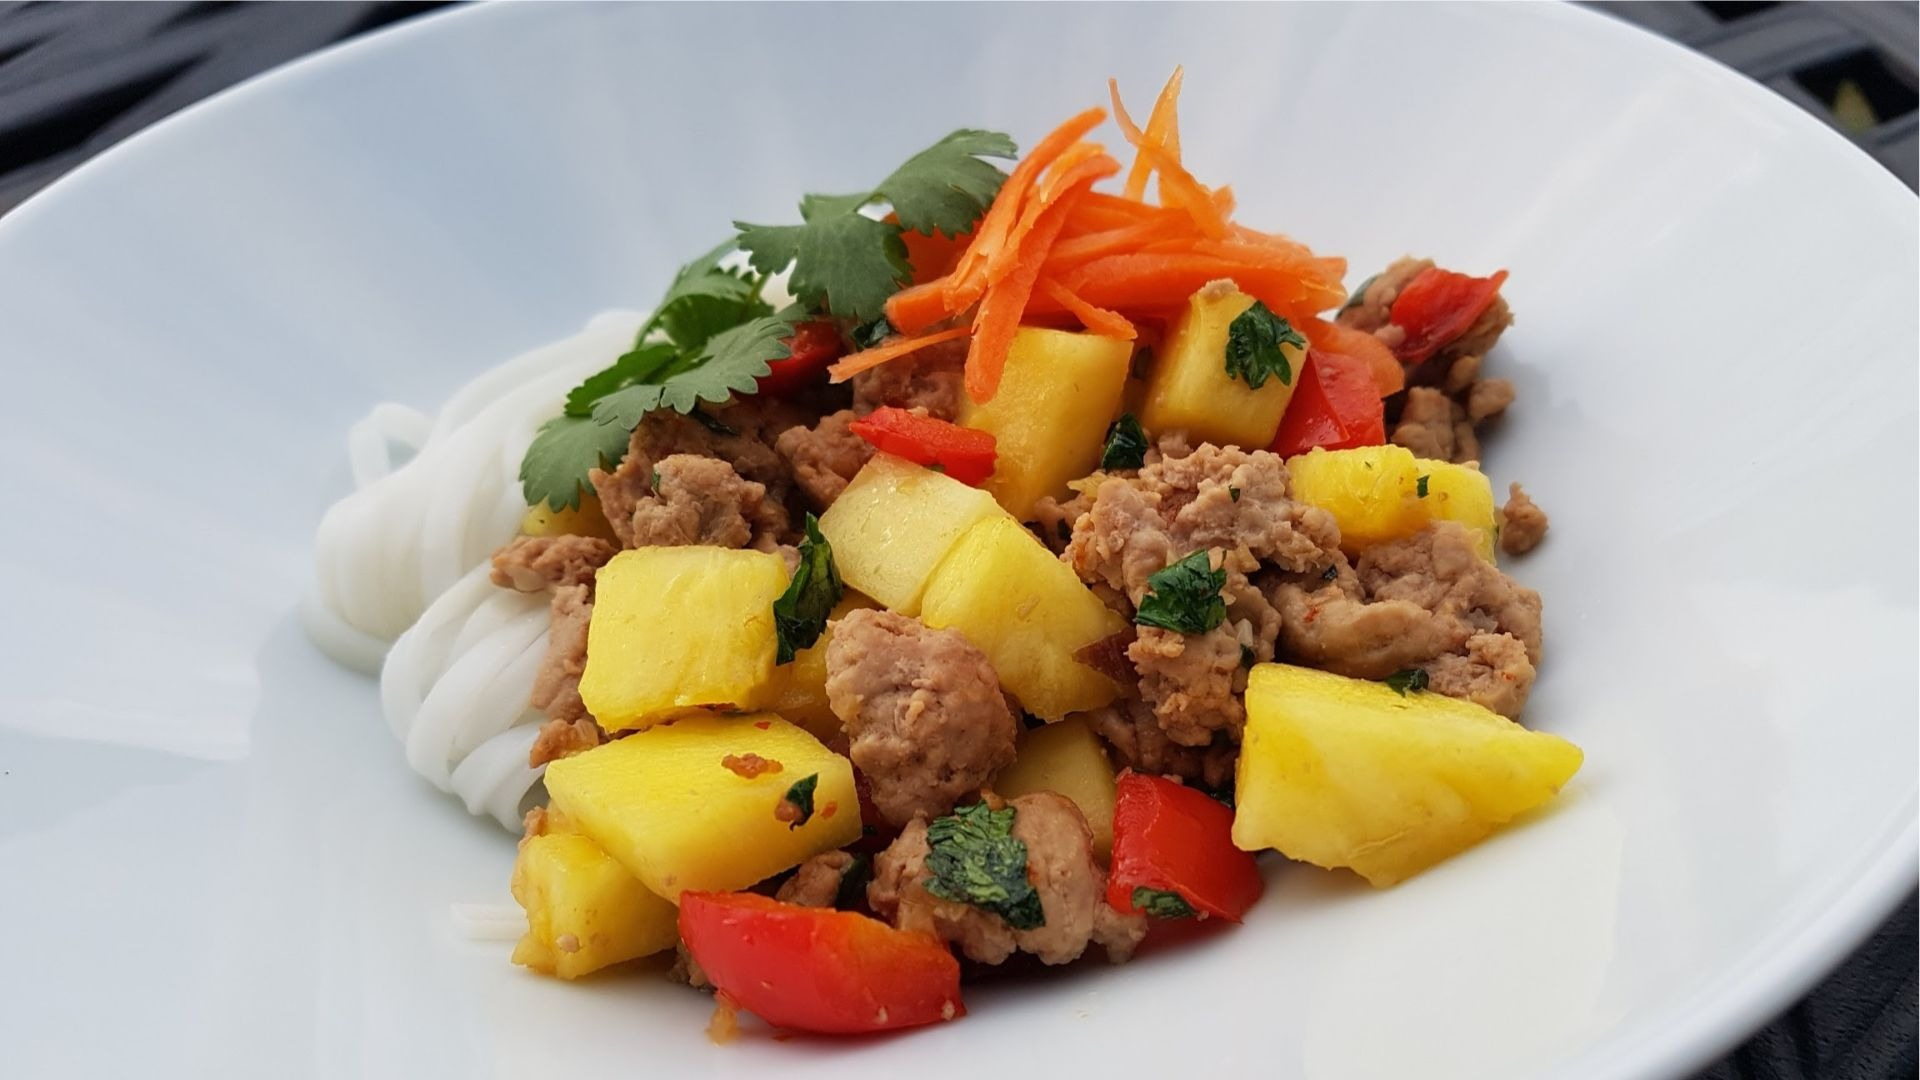 Bowl of noodles, minced turkey, pineapple, red peppers and grated carrots